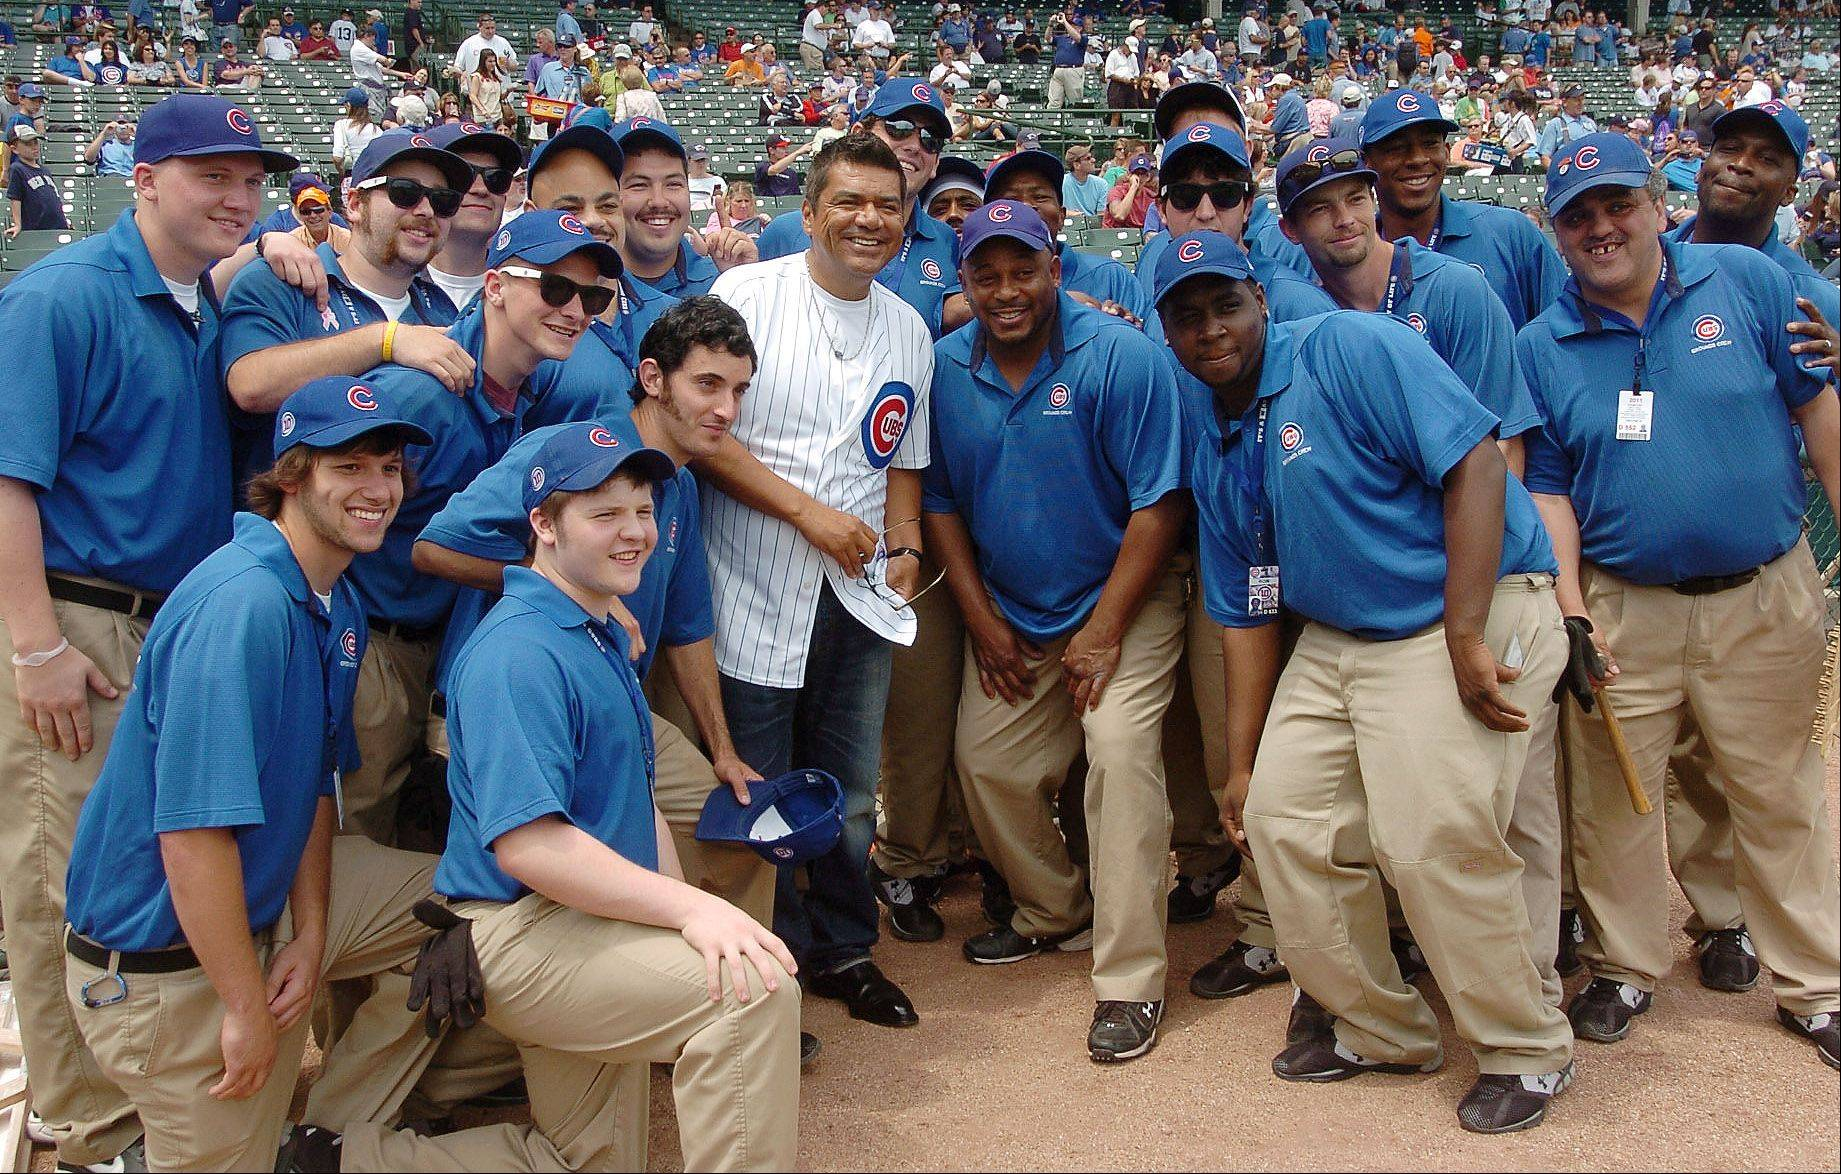 George Lopez gets his picture taken with the grounds crew before the game. Lopez also threw out the first pitch.